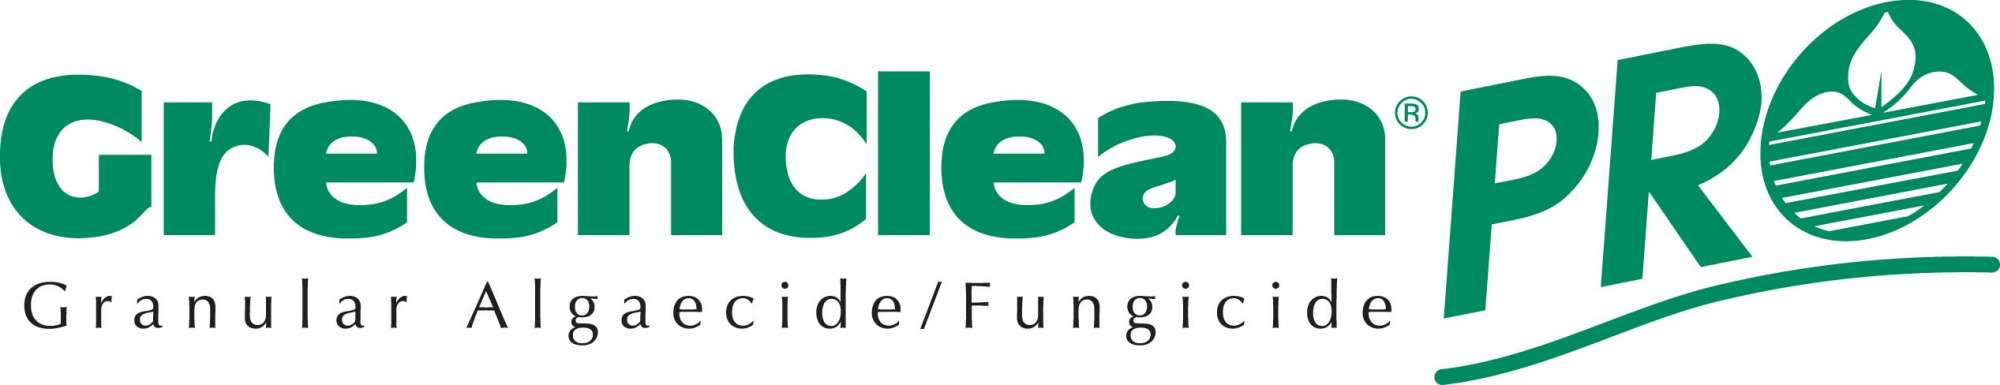 BioSafe Systems Expands GreenCleanPRO Label In California